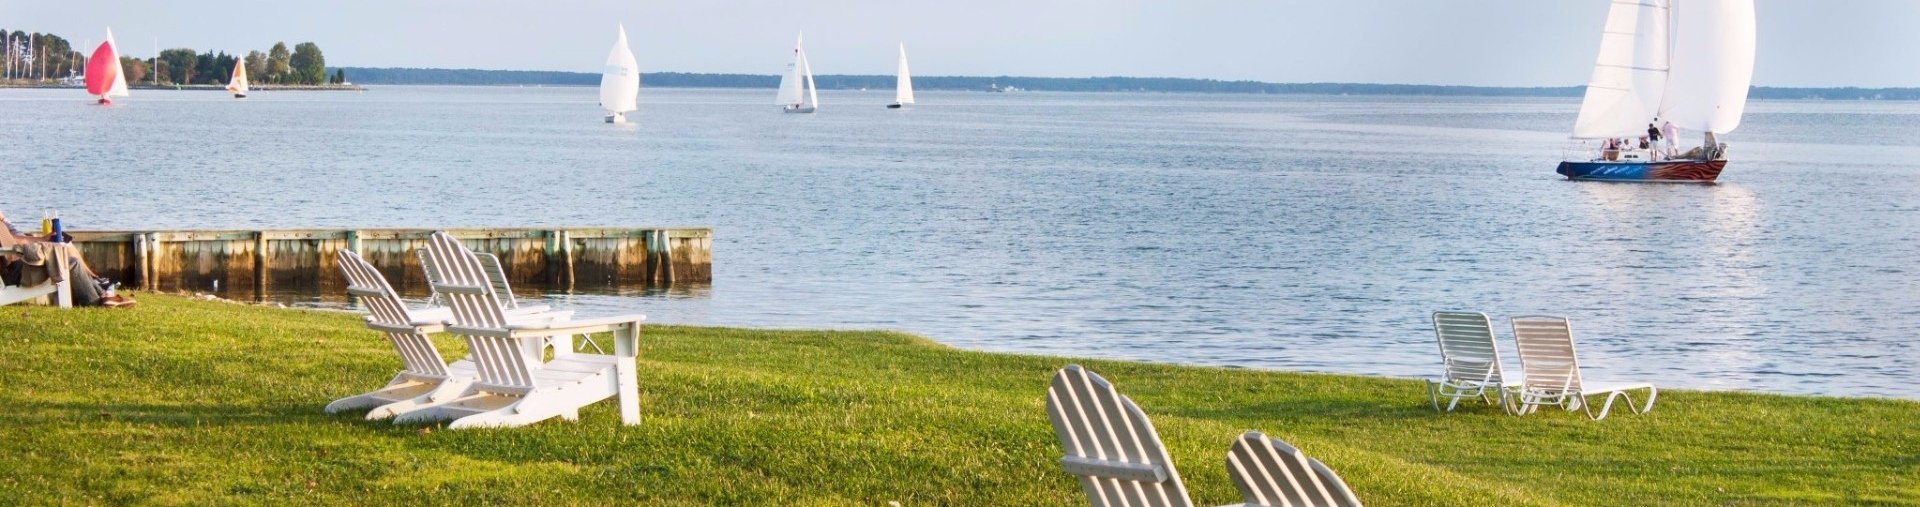 Chairs on a lawn facing sailboats in the water